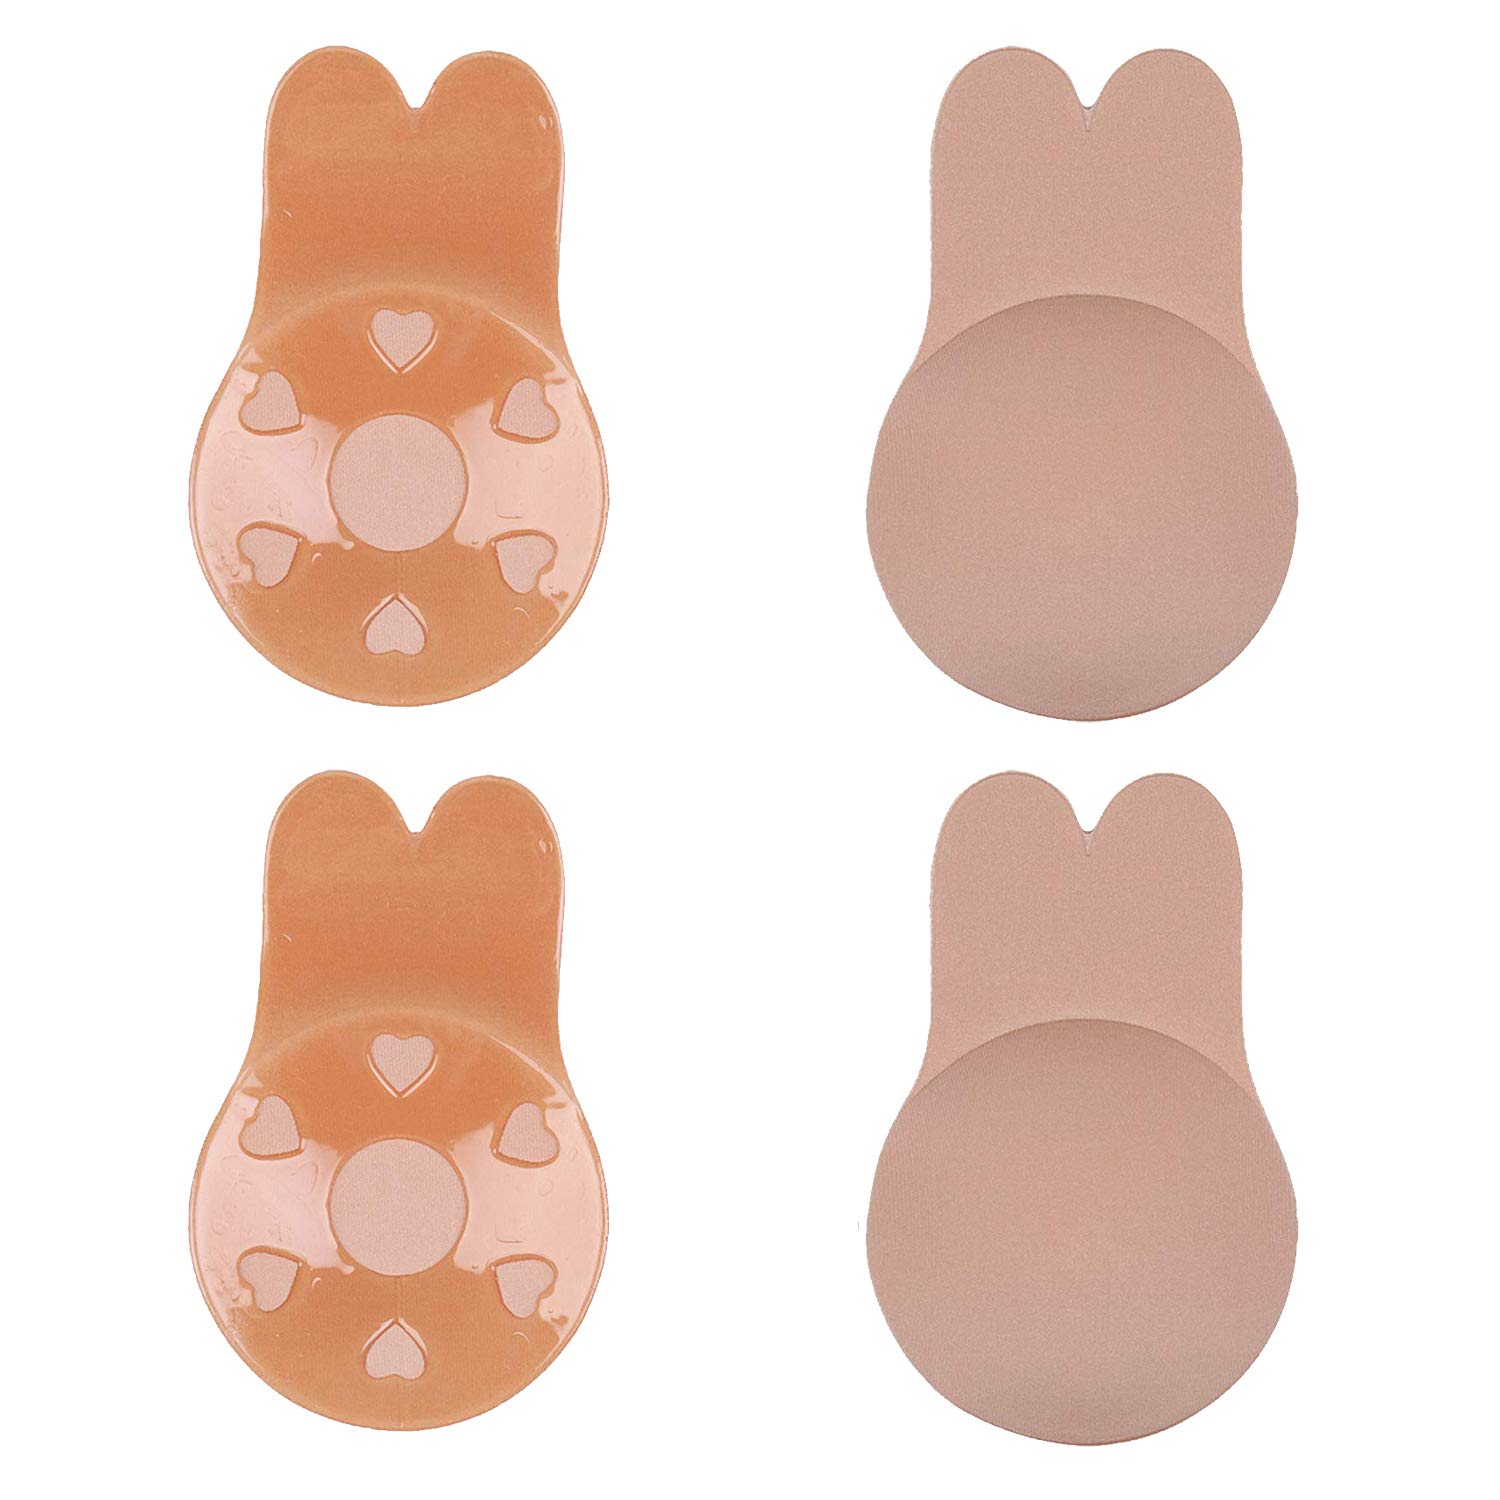 A-DD Cup 2 Pairs Lift up Invisible Bra Stick on Bra Adhesive Nipplecovers for Backless Dress